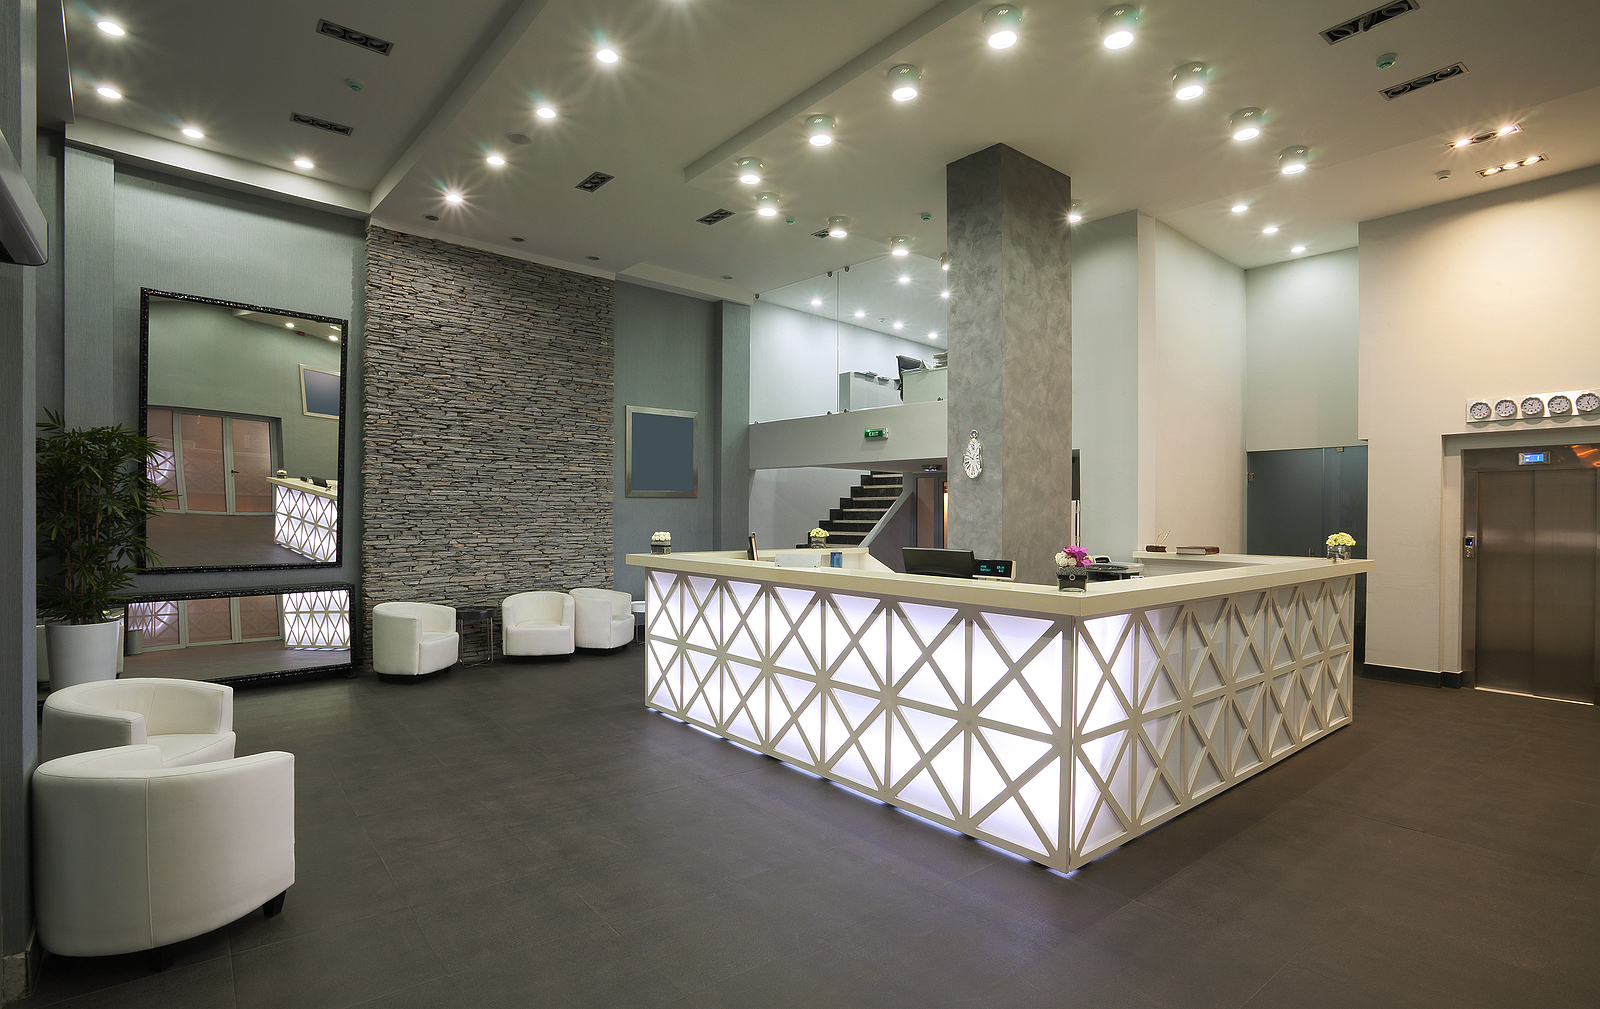 How Your Business Can Save with LED Recessed Lights